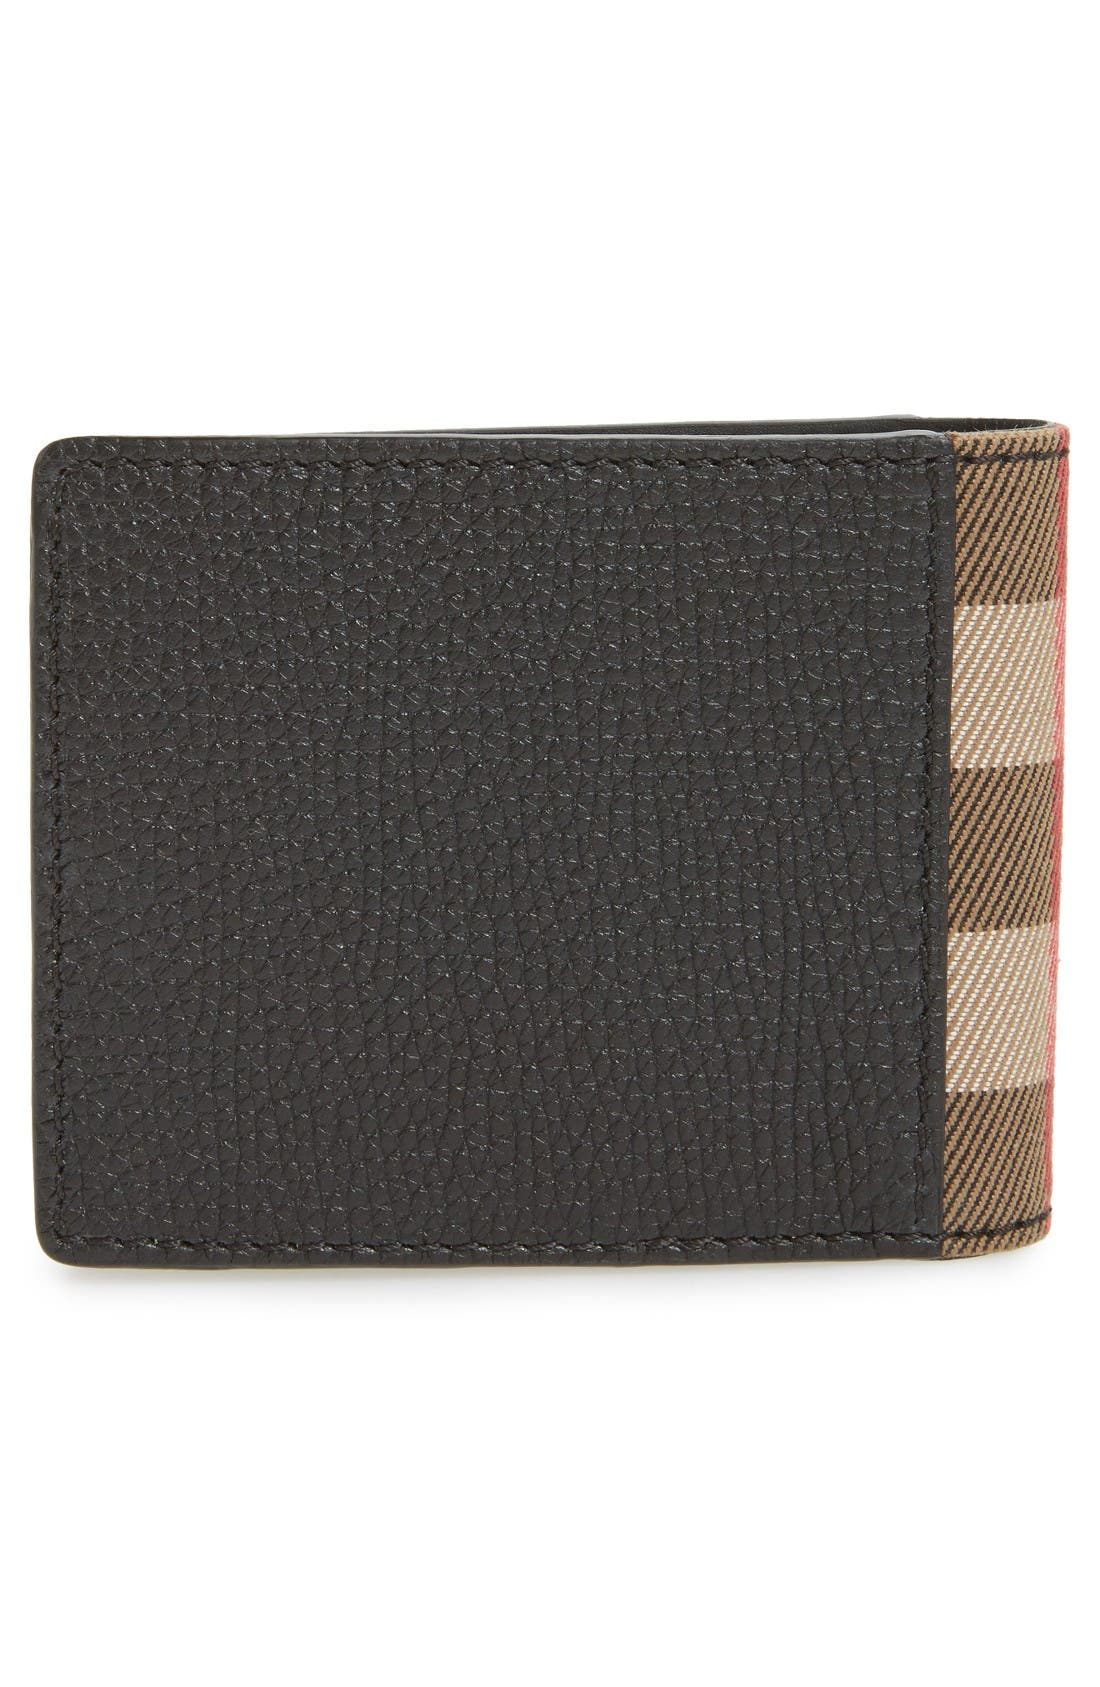 Alternate Image 3  - Burberry Check Leather Wallet